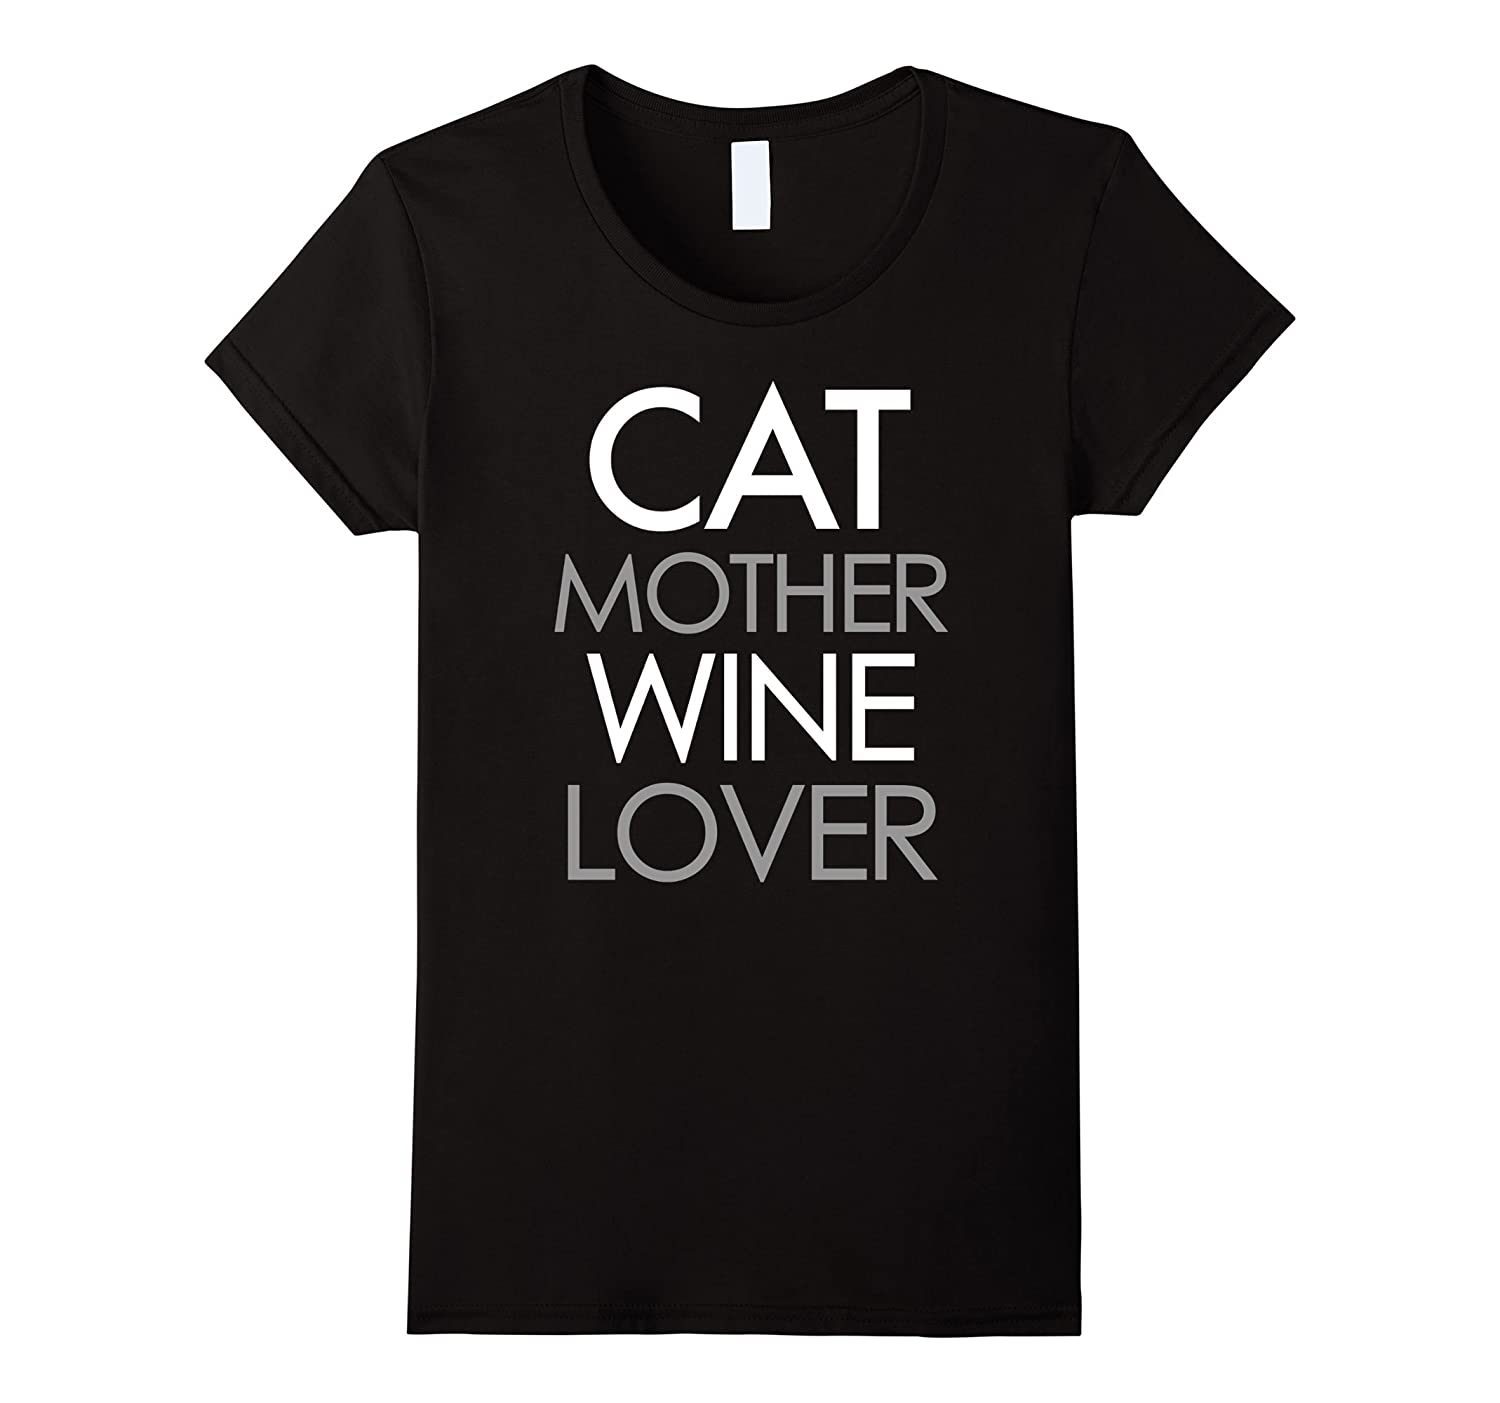 Womens Cat Mother Wine Lover T-Shirt For Mom, Wife and Girlfriend-CL